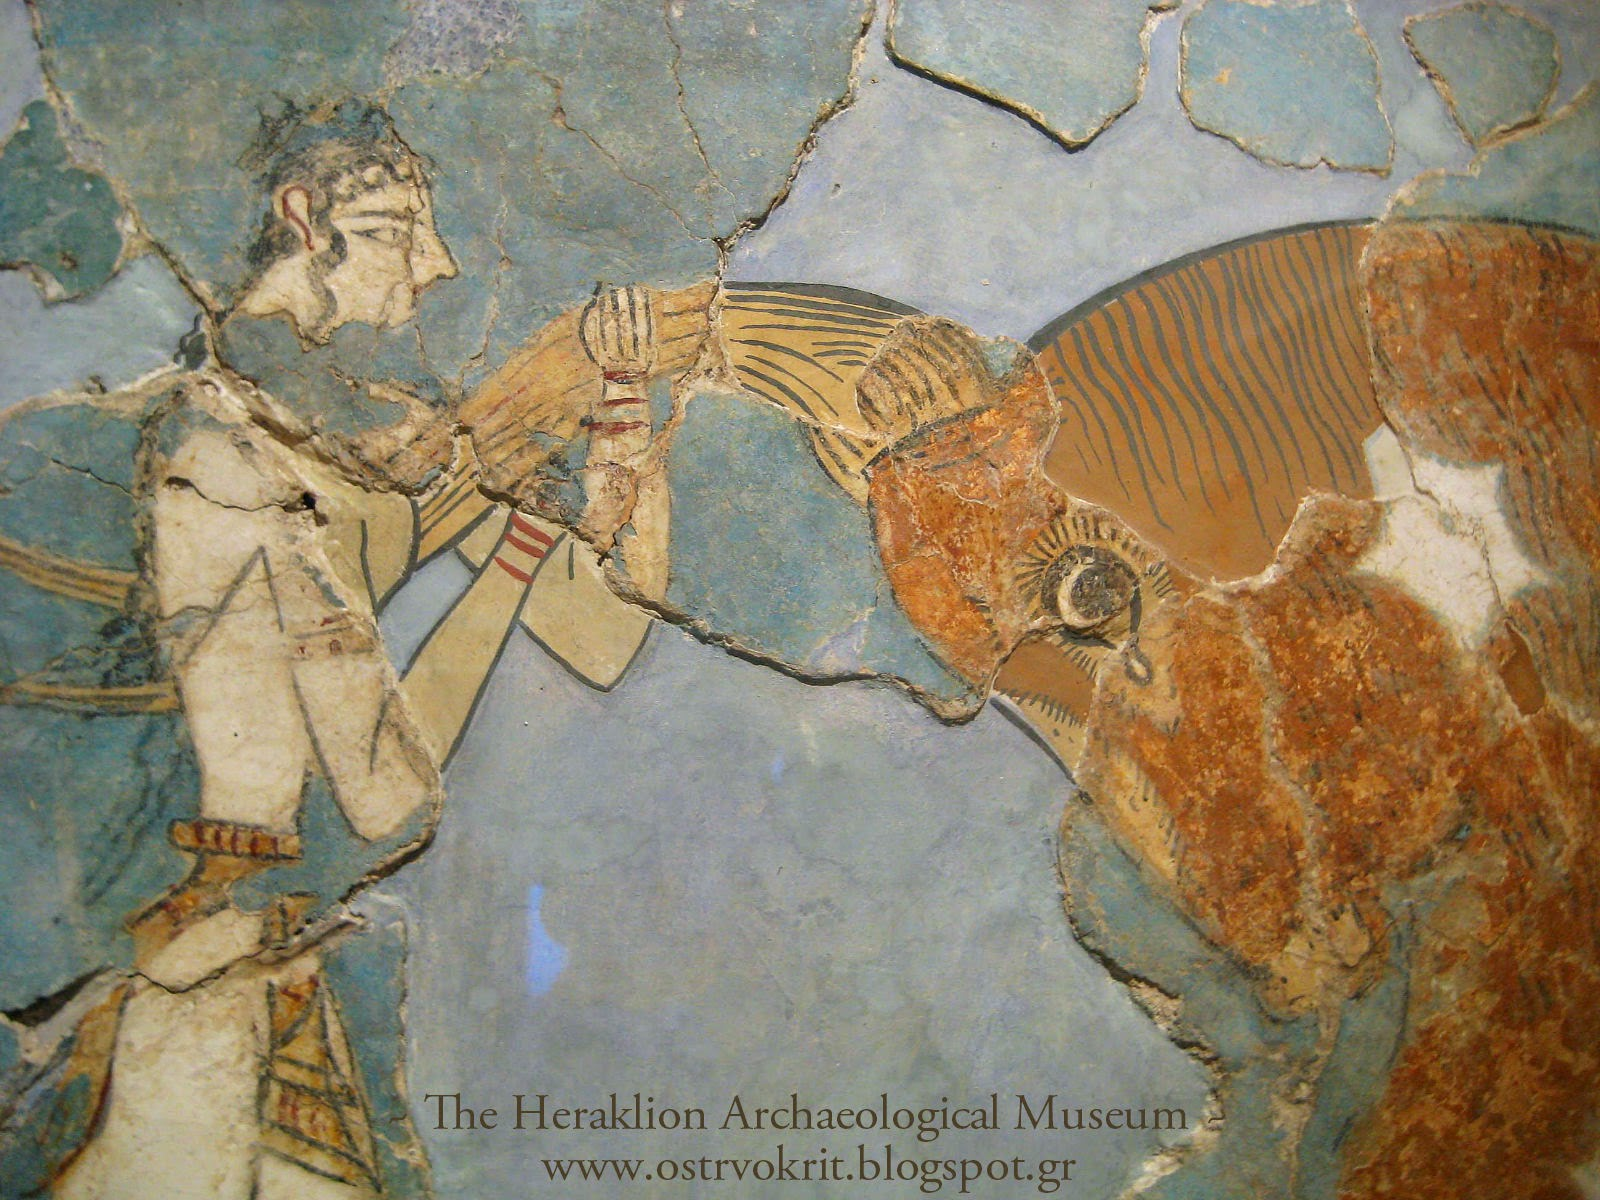 Bull leaping fresco(1600-1450 BC) from Knossos palace, acrobats leaping across a bull